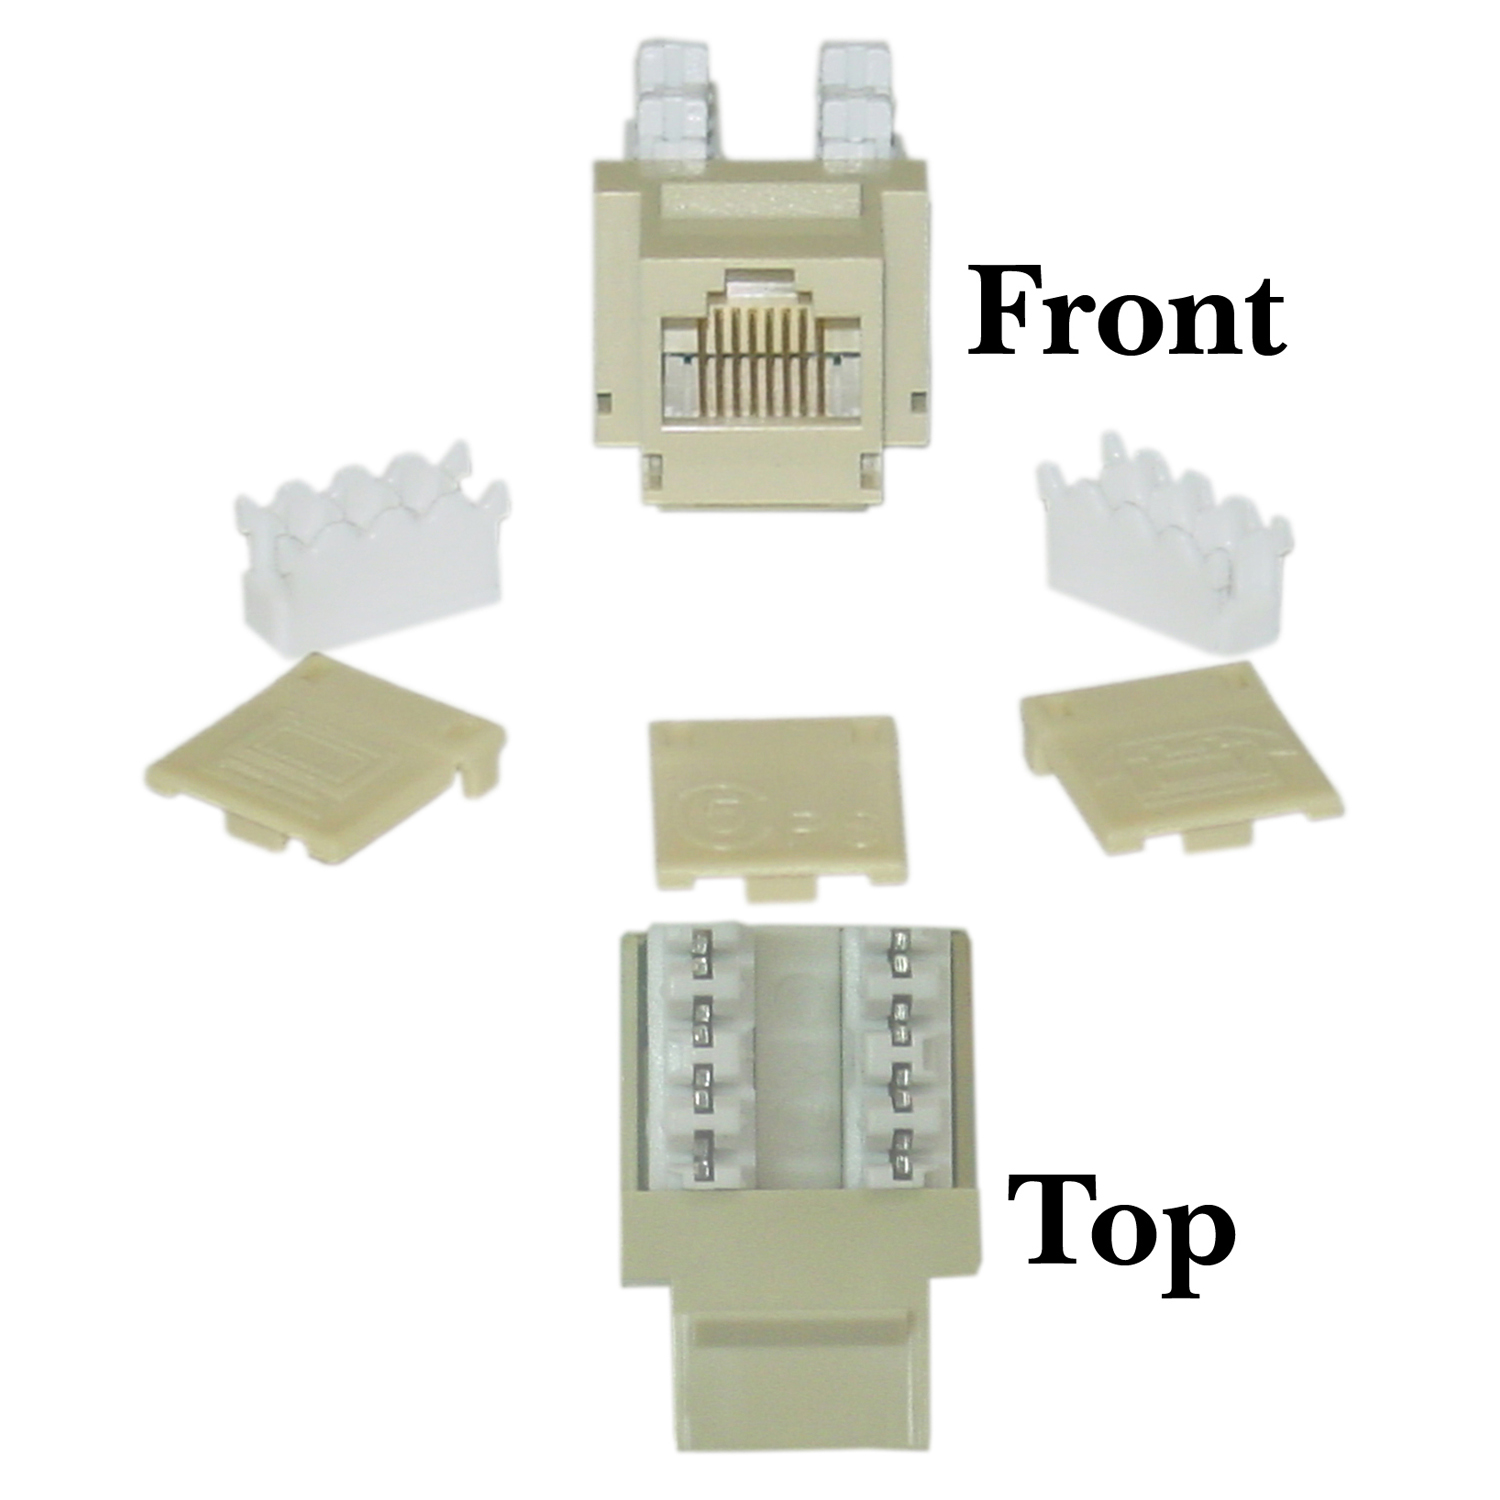 Offex Cat 5e Keystone Jack, Beige / Ivory, RJ45 Female to 110 Punch Down